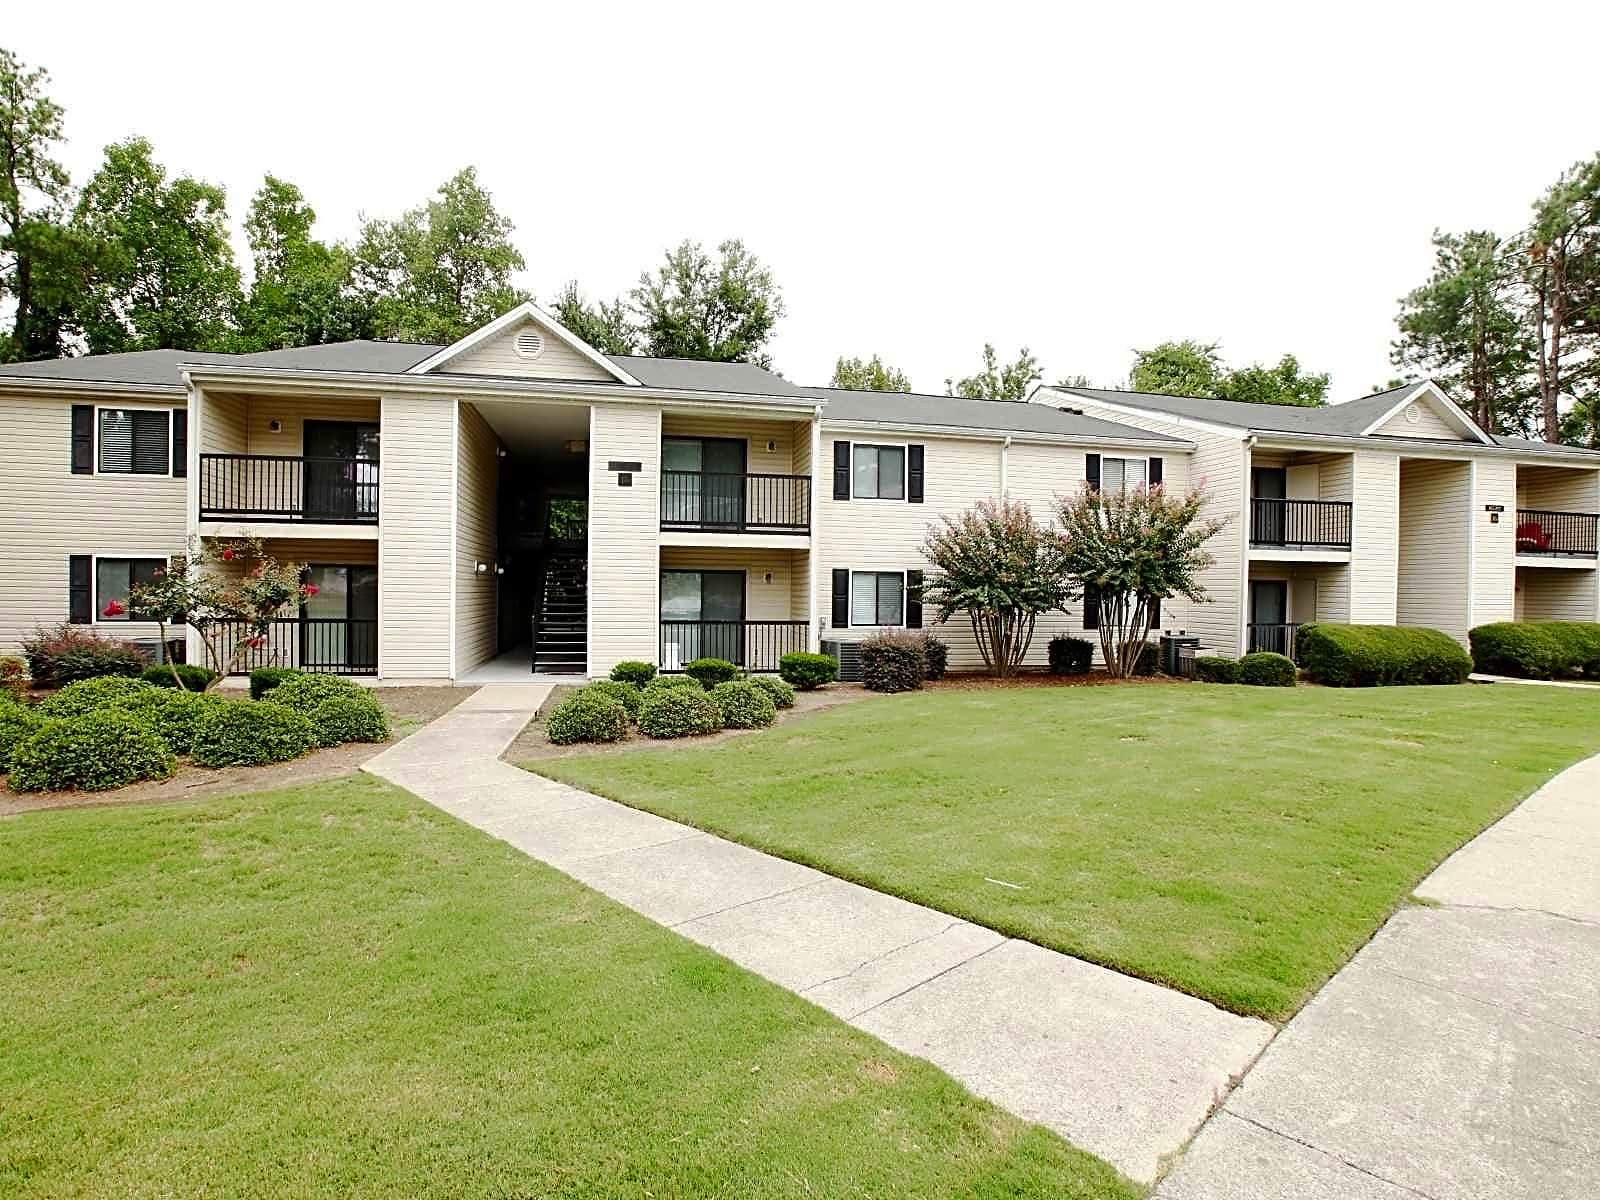 Photo: Augusta Apartment for Rent - $872.00 / month; 3 Bd & 2 Ba